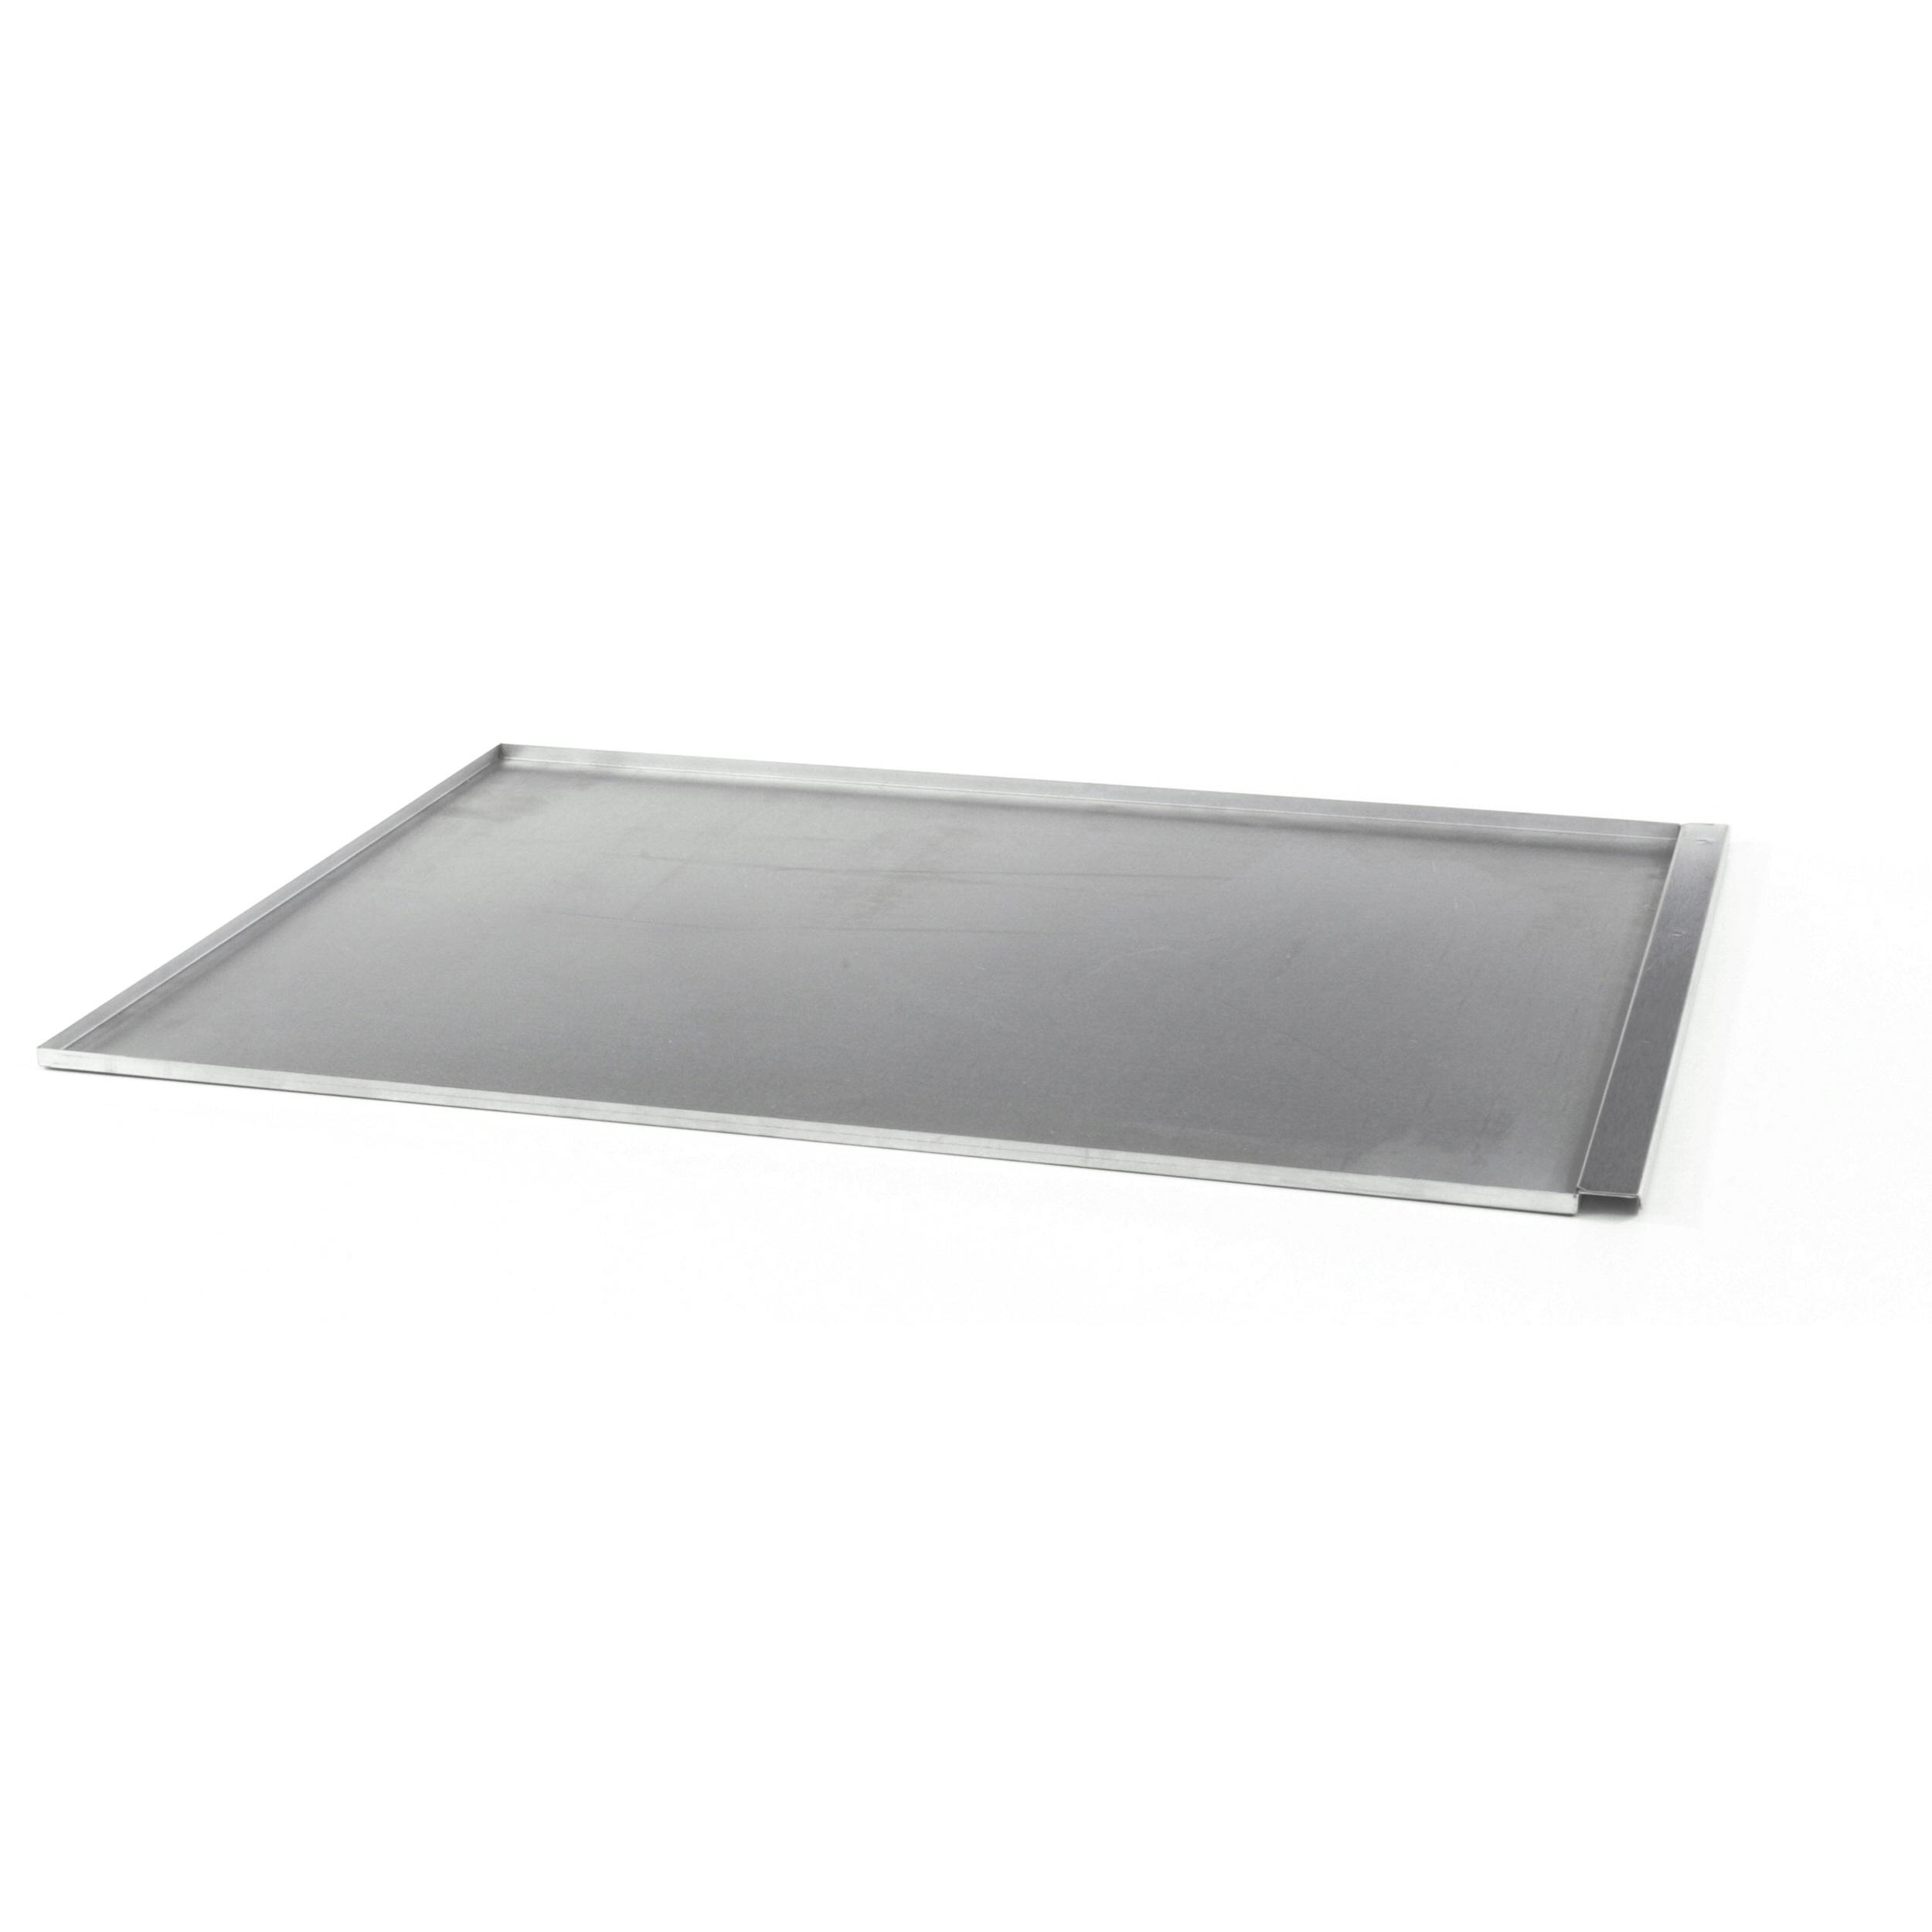 MONTAGUE DRIP TRAY